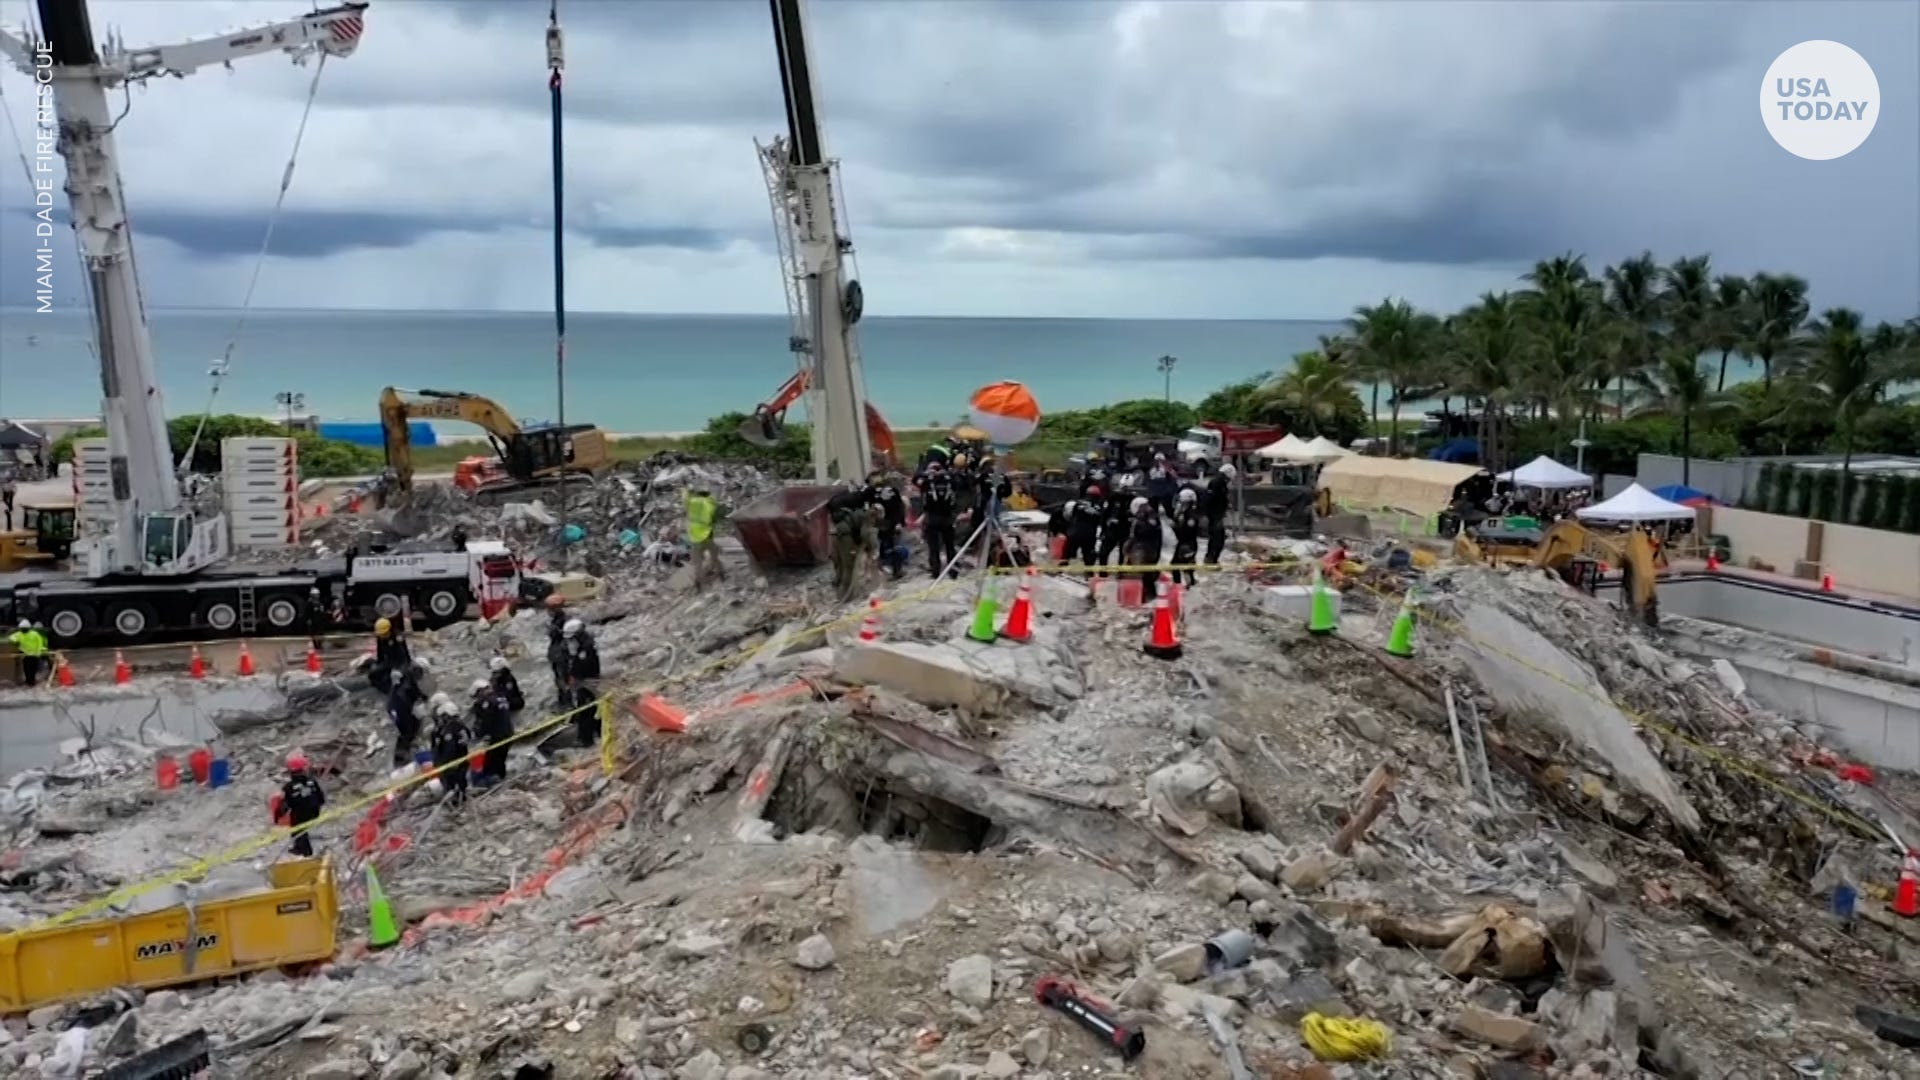 We will not rest : Second condo tower evacuated in wake of collapse; audit of buildings underway in South Florida